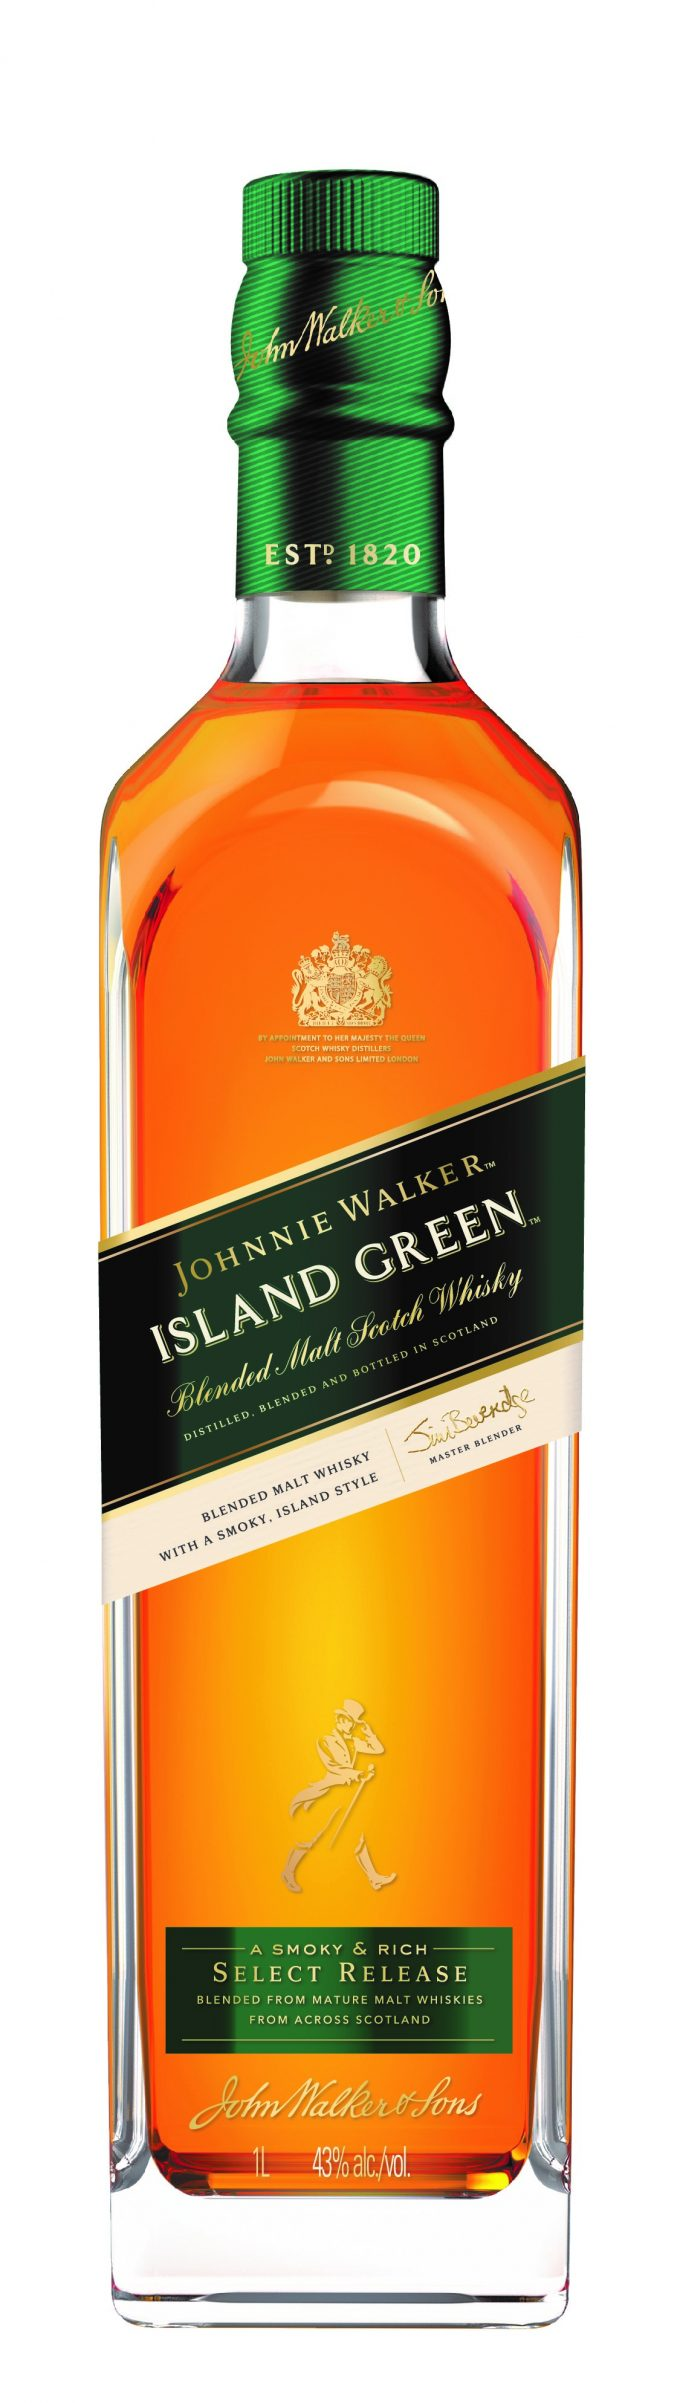 Johnnie Walker unveils Island Green blended malt; Exclusive to duty-free